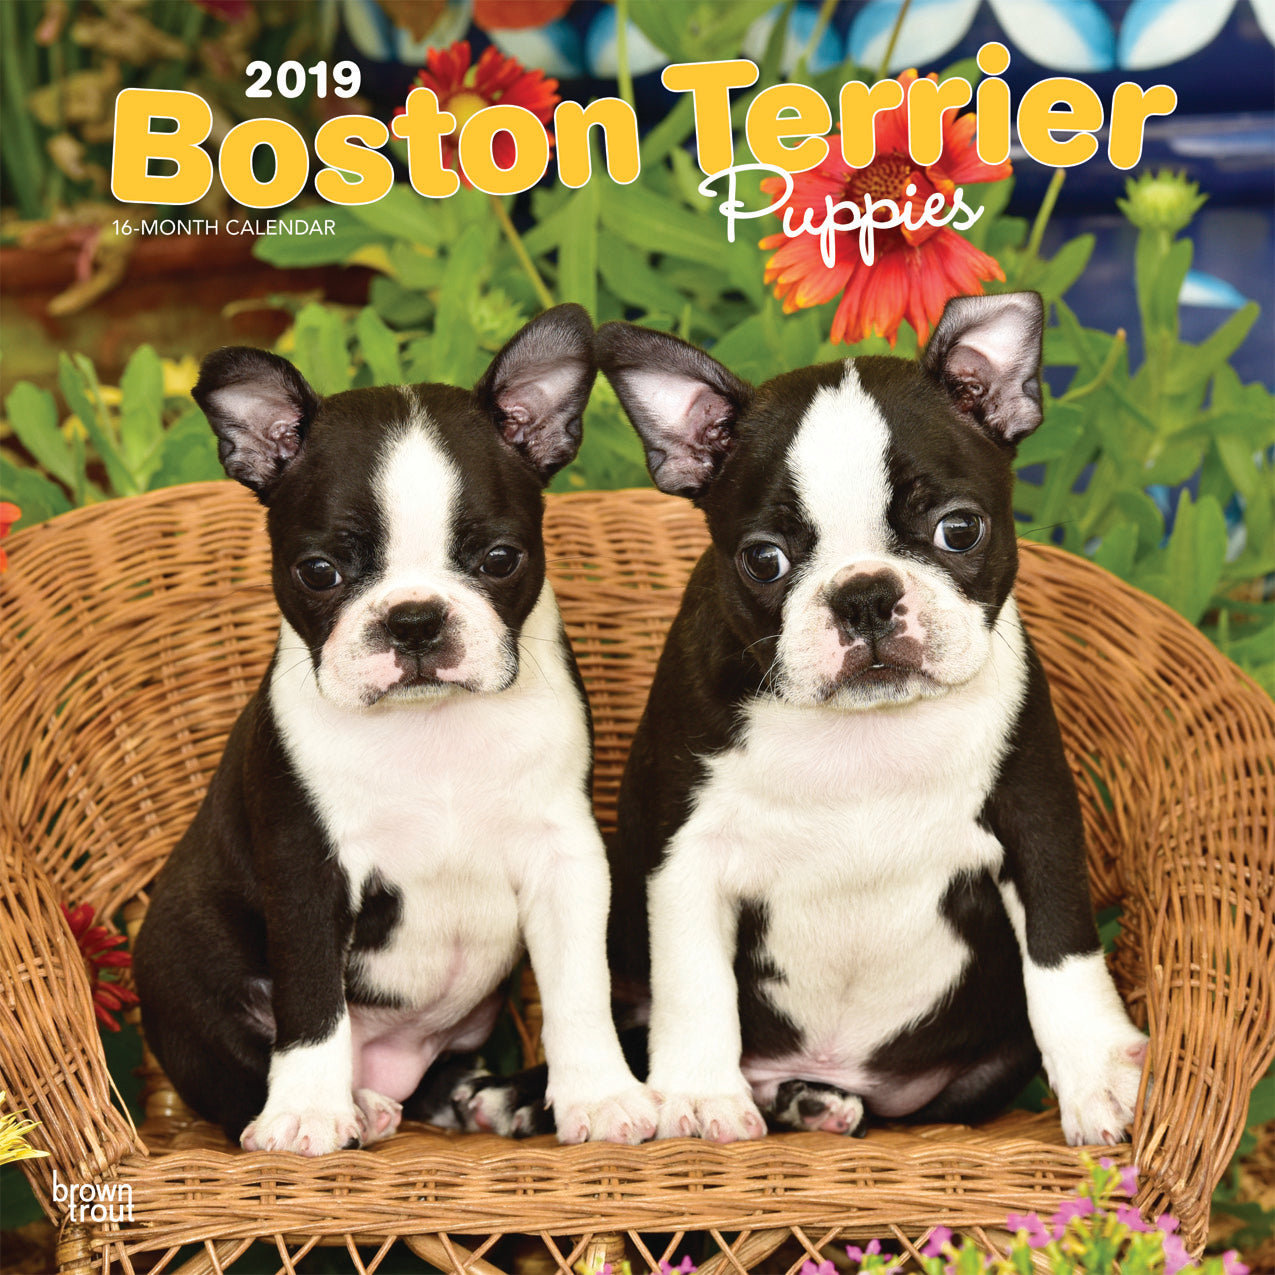 Boston Terrier Puppies 2019 Wall Calendar